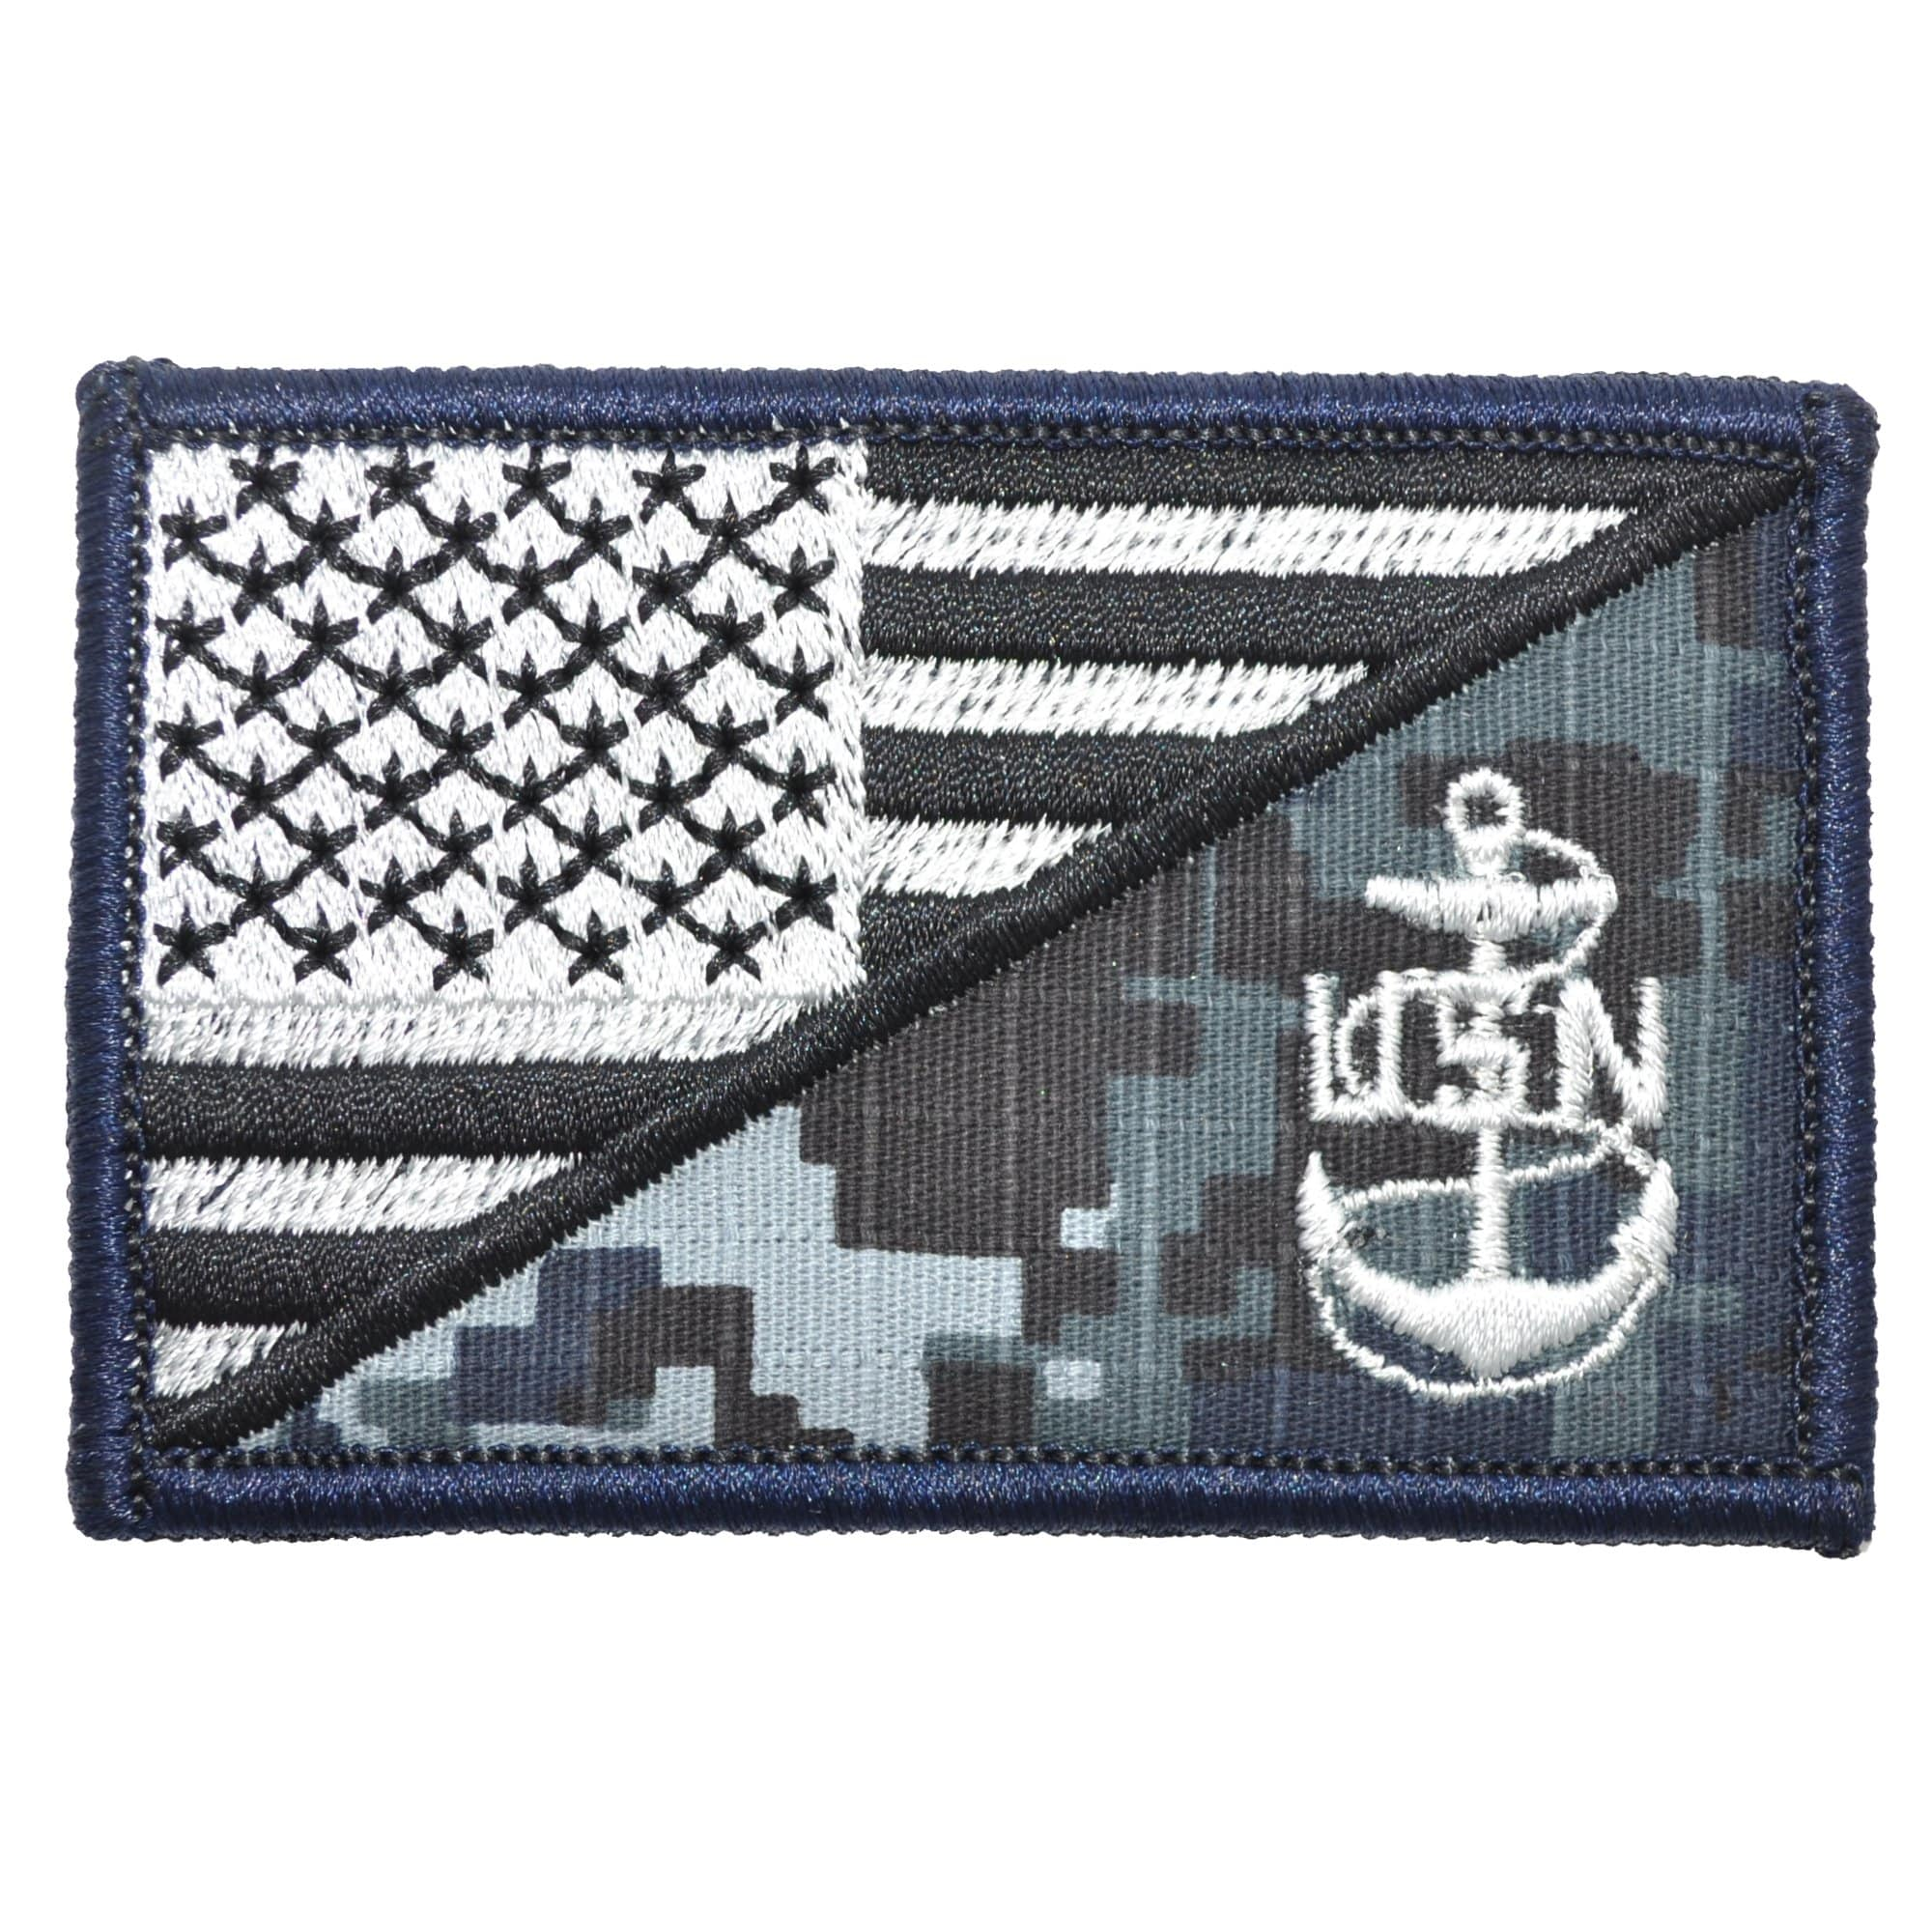 Navy Chief Petty Officer Anchor USA Flag - 2.25x3.5 Patch